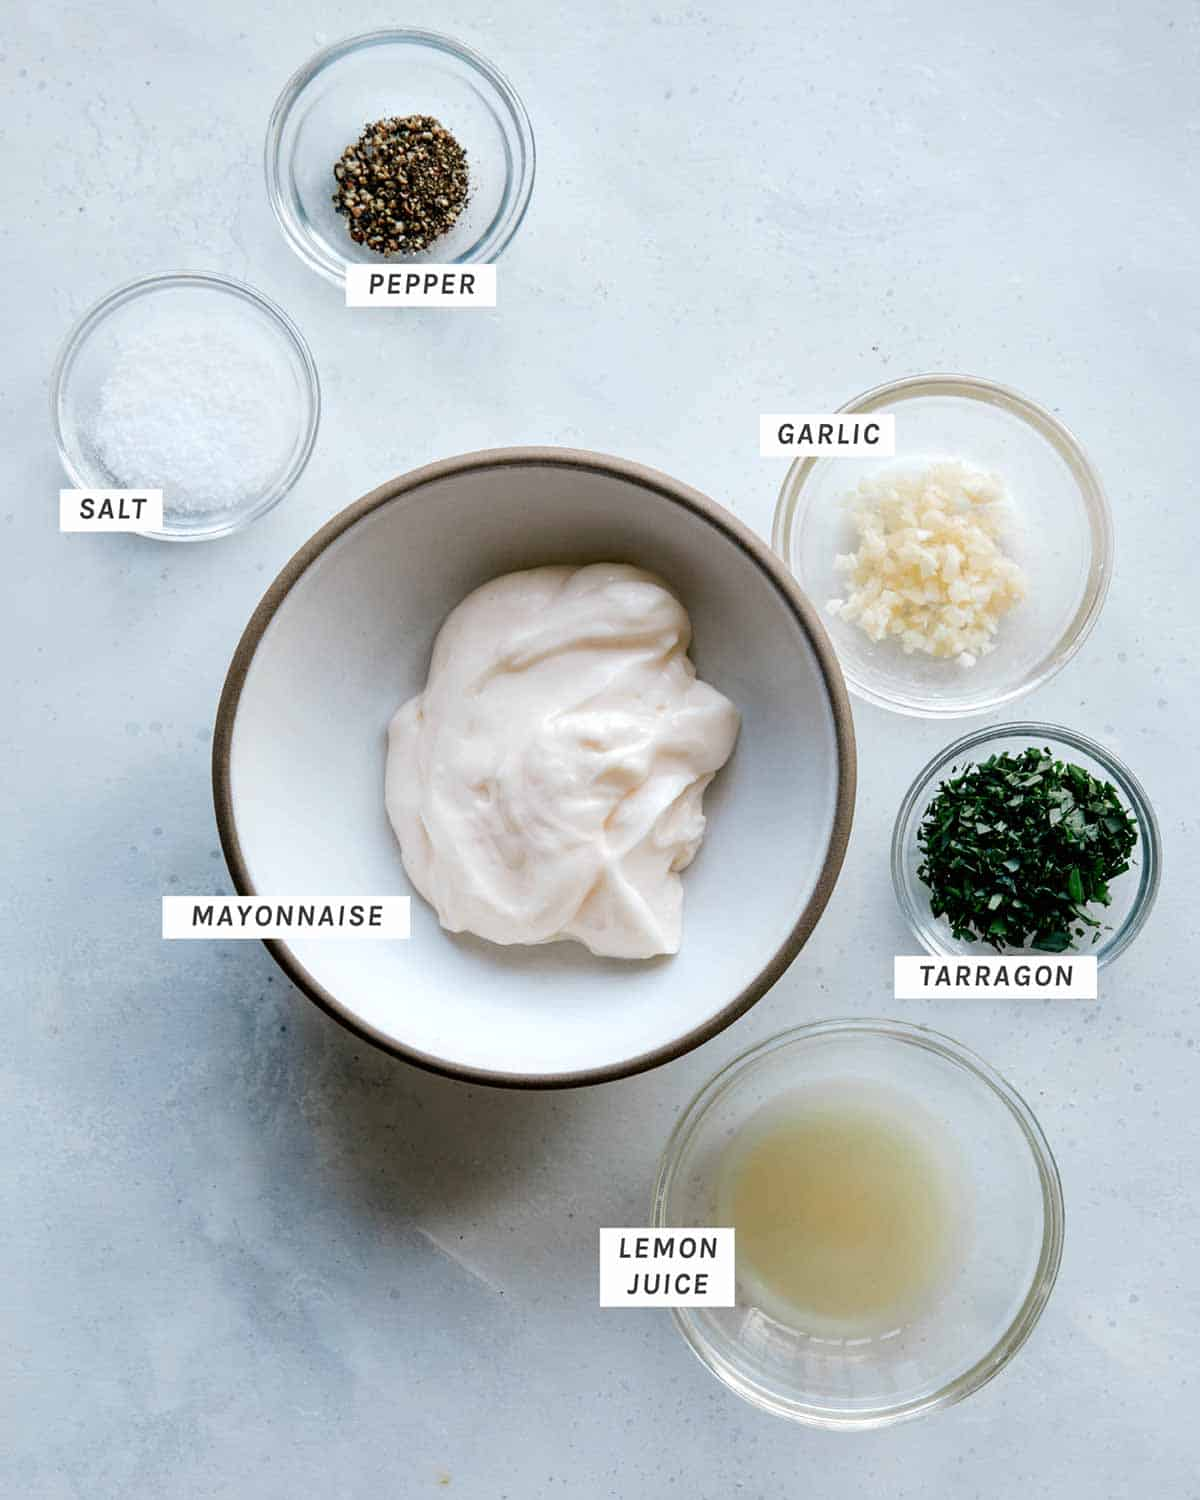 Ingredients for a tarragon aioli all laid on on a kitchen surface.